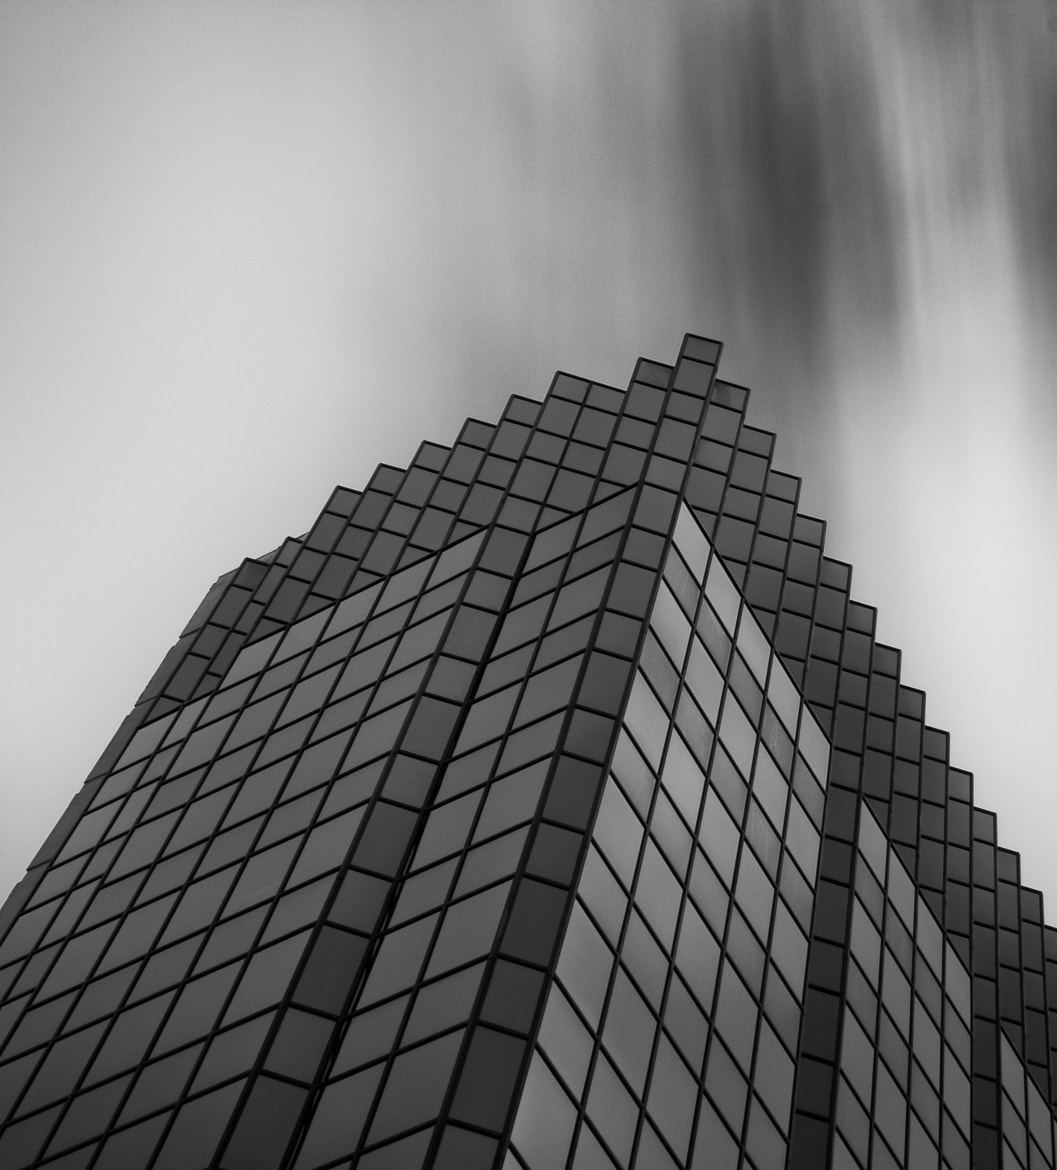 Photograph The Tower by Steve Rowland on 500px